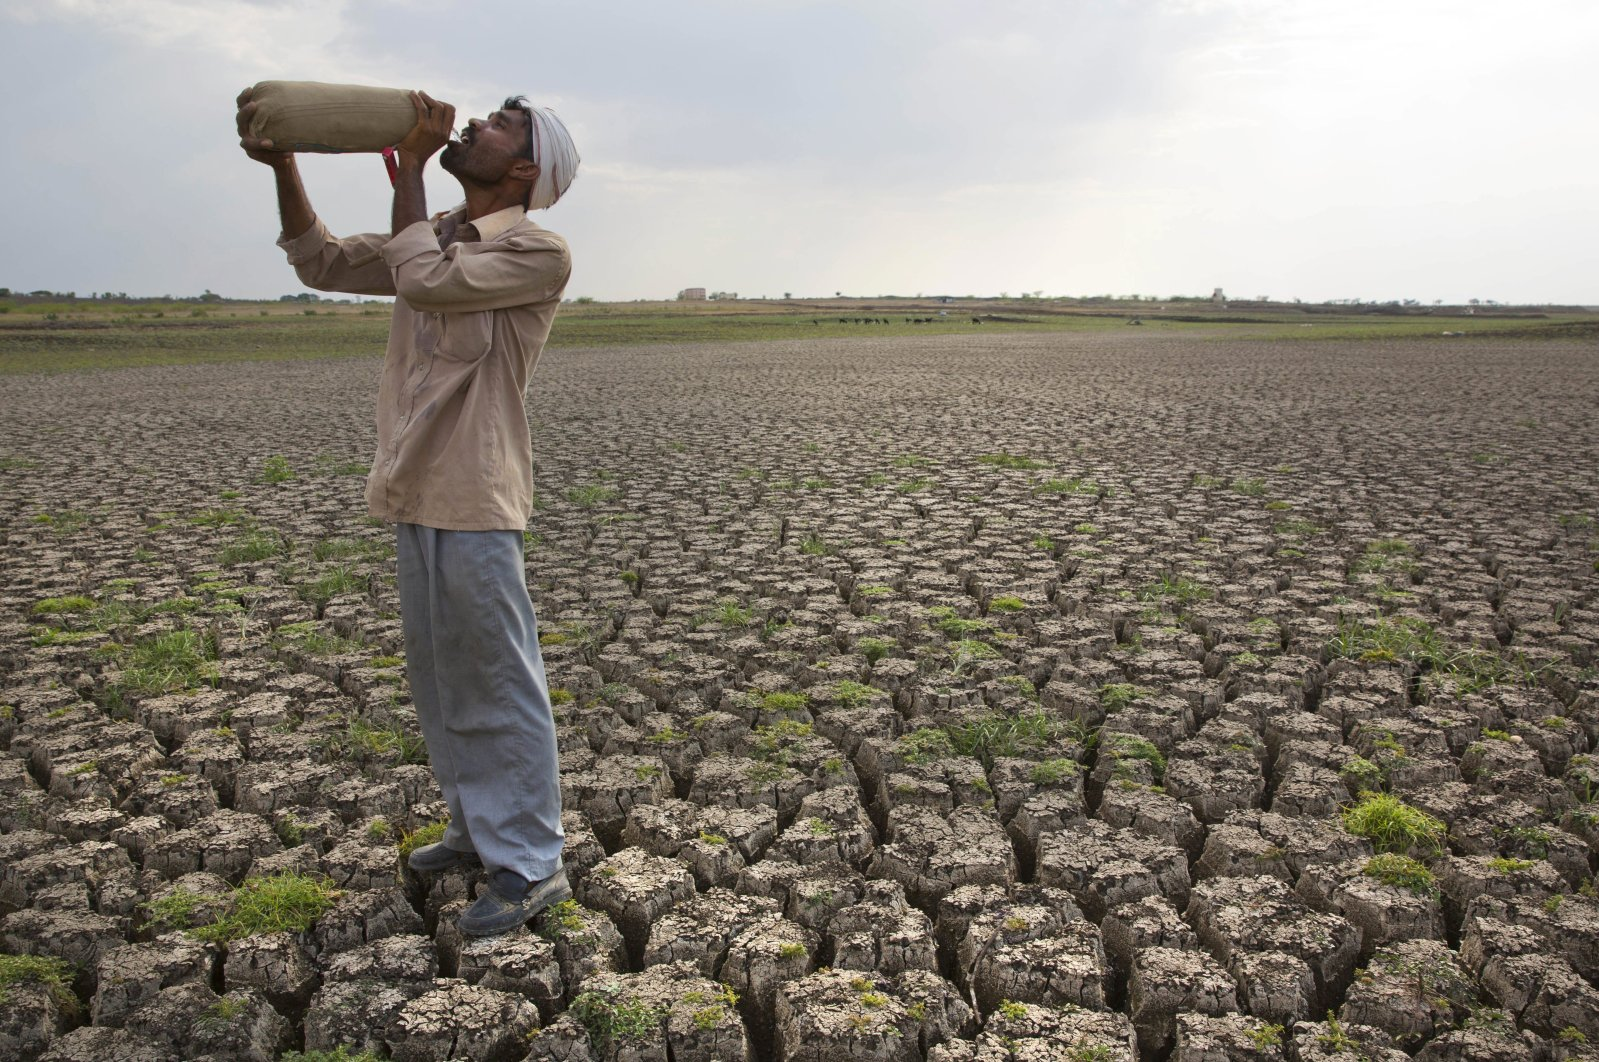 In this May 10, 2016, photo, a Shepard drinks water on the dry bed of Manjara Dam, which supplies water to Latur and nearby villages in Marathwada region, in the Indian state of Maharashtra. Many people are forced to leave their hometown due to changes in their local environment.  (AP Photo)